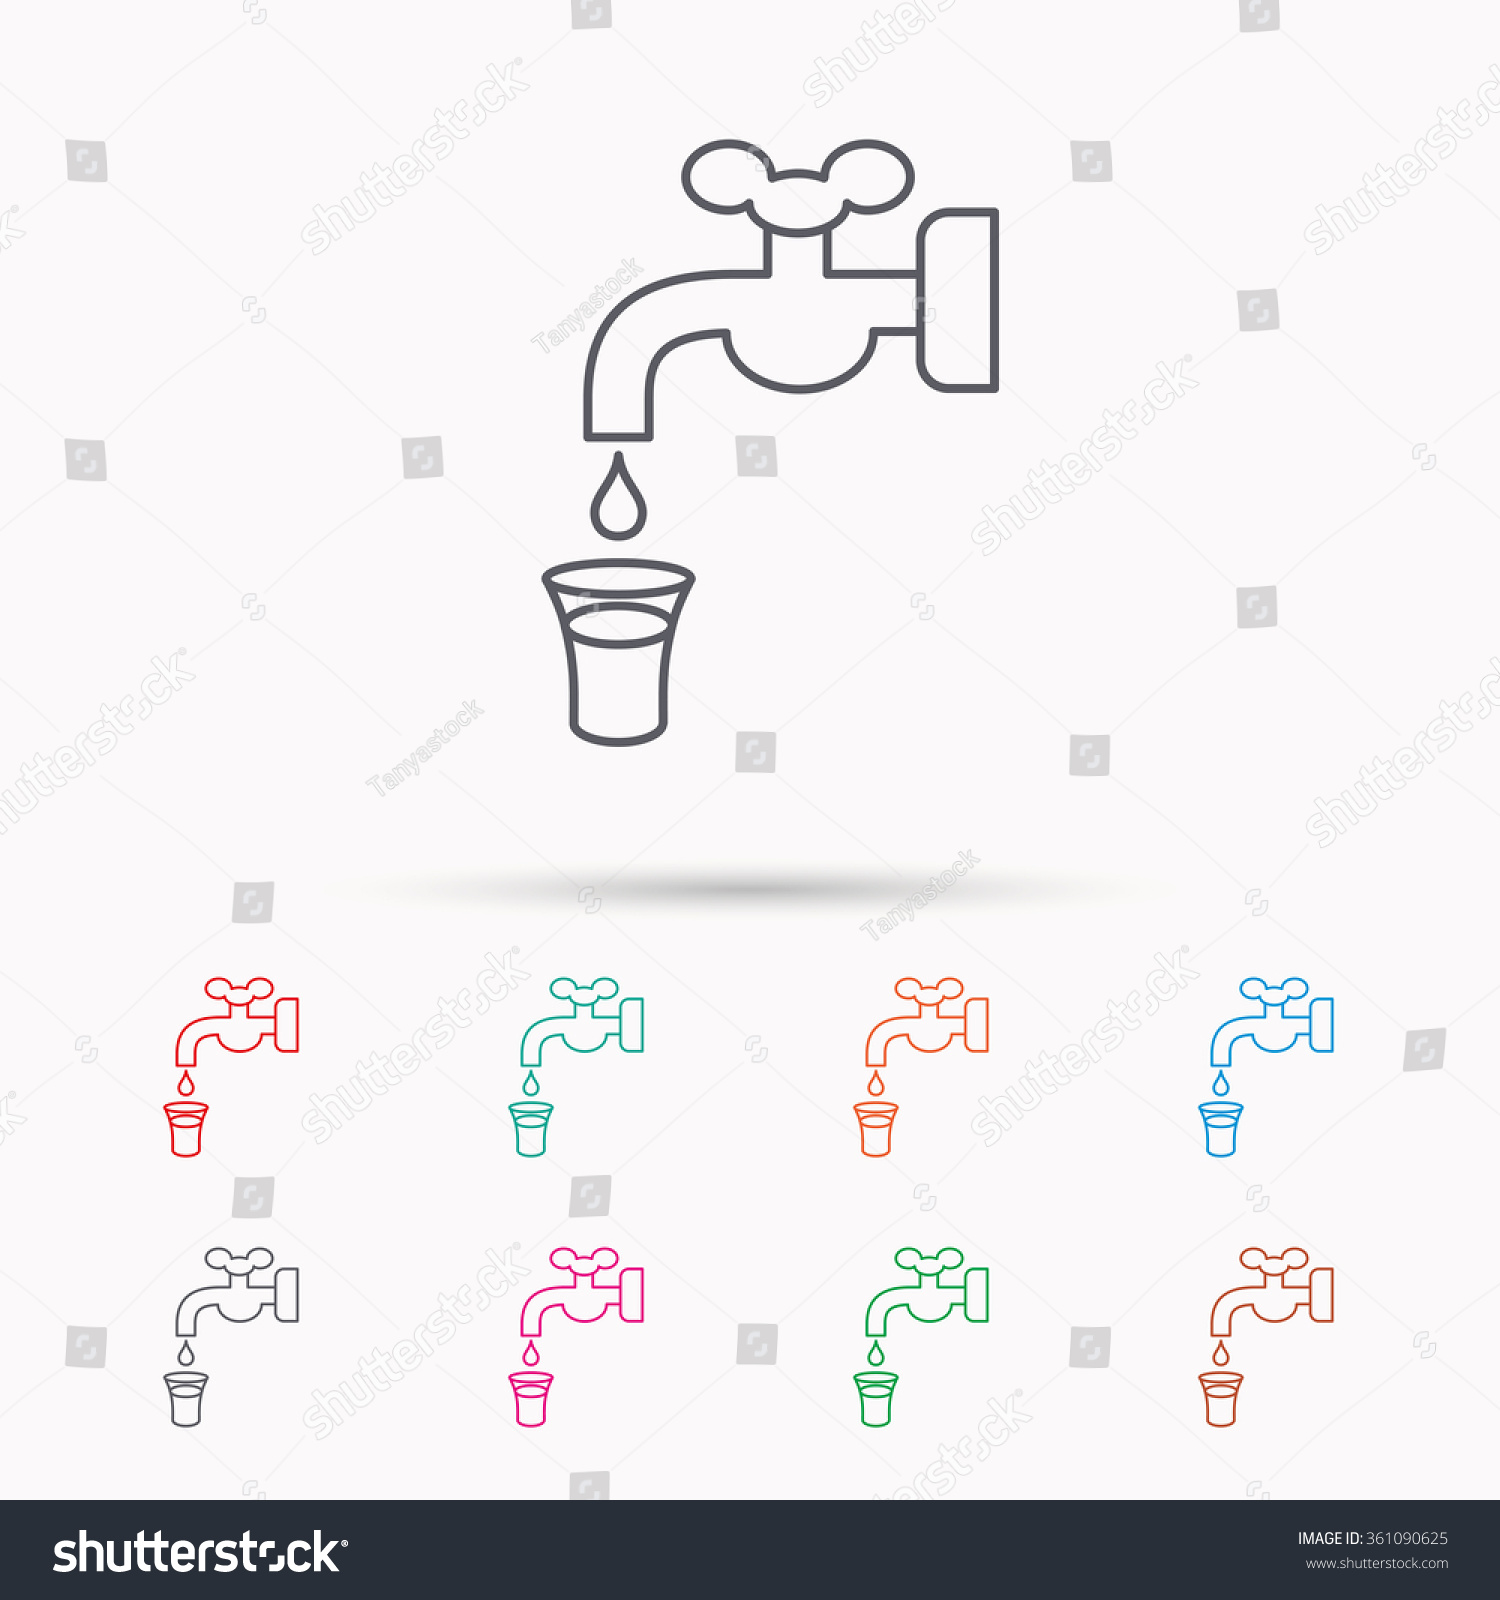 Save Water Icon Crane Faucet Drop Stock Vector 361090625 - Shutterstock